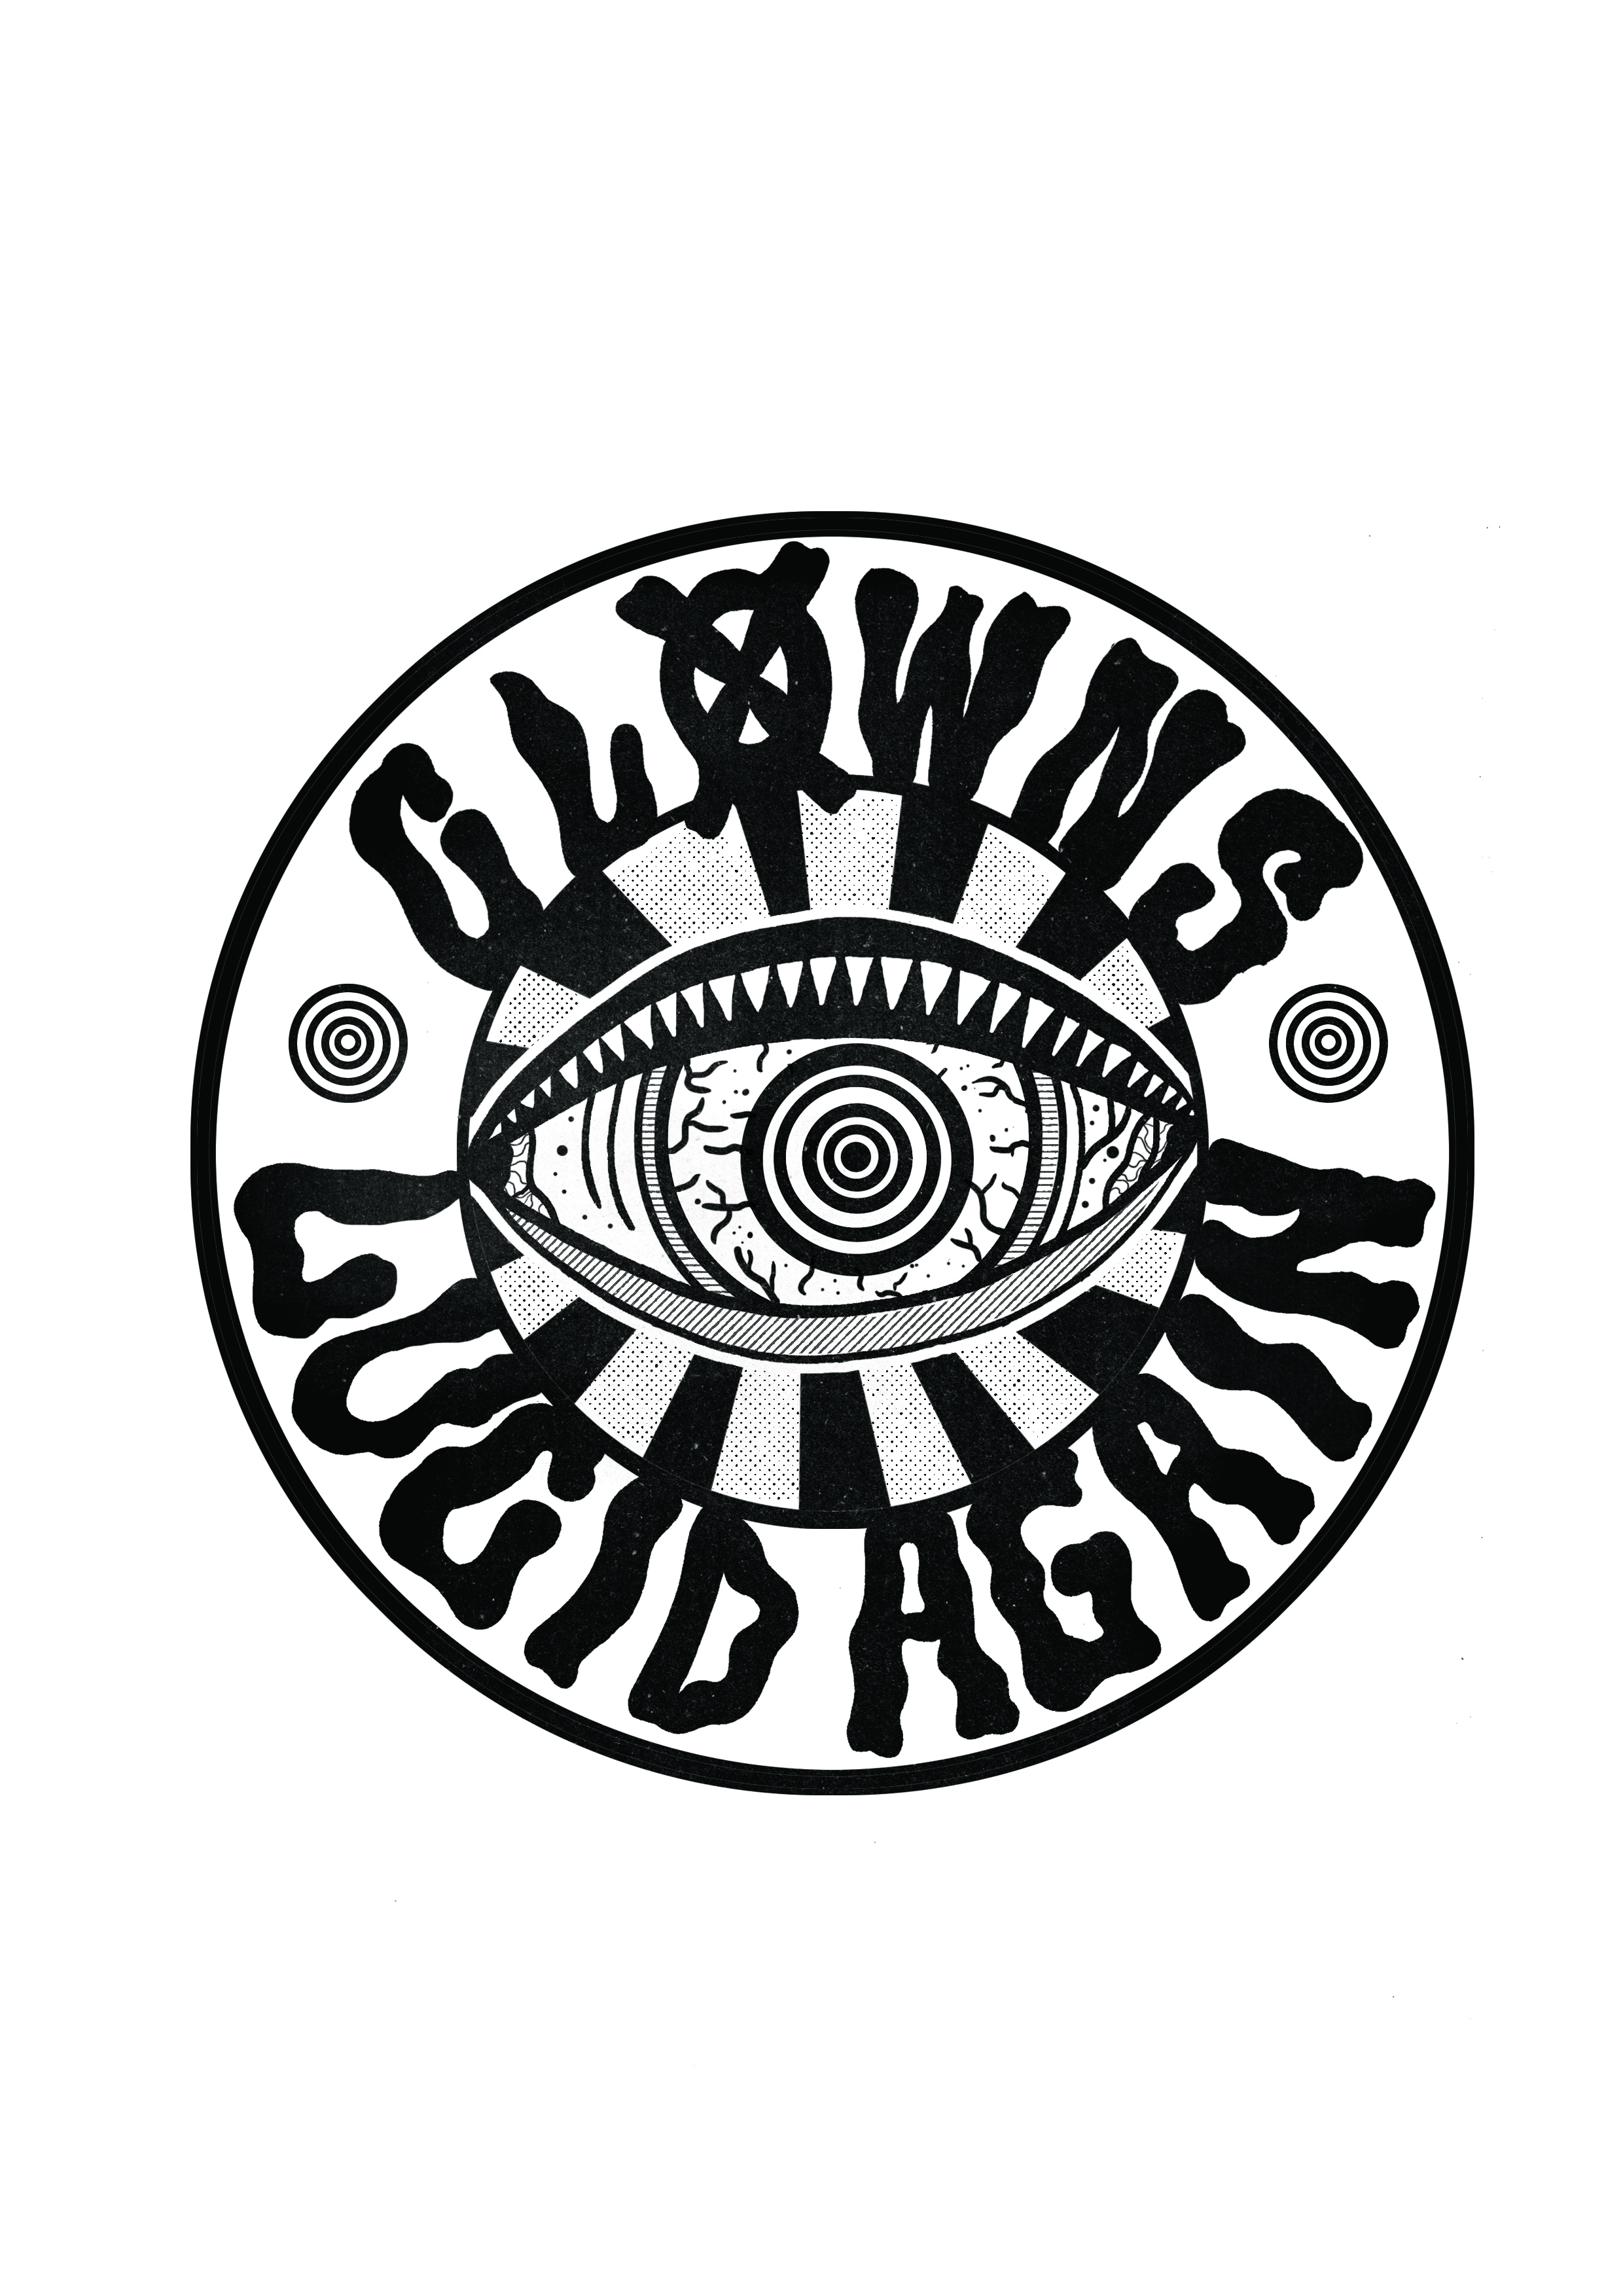 Logo for Melbourne band Clowns.